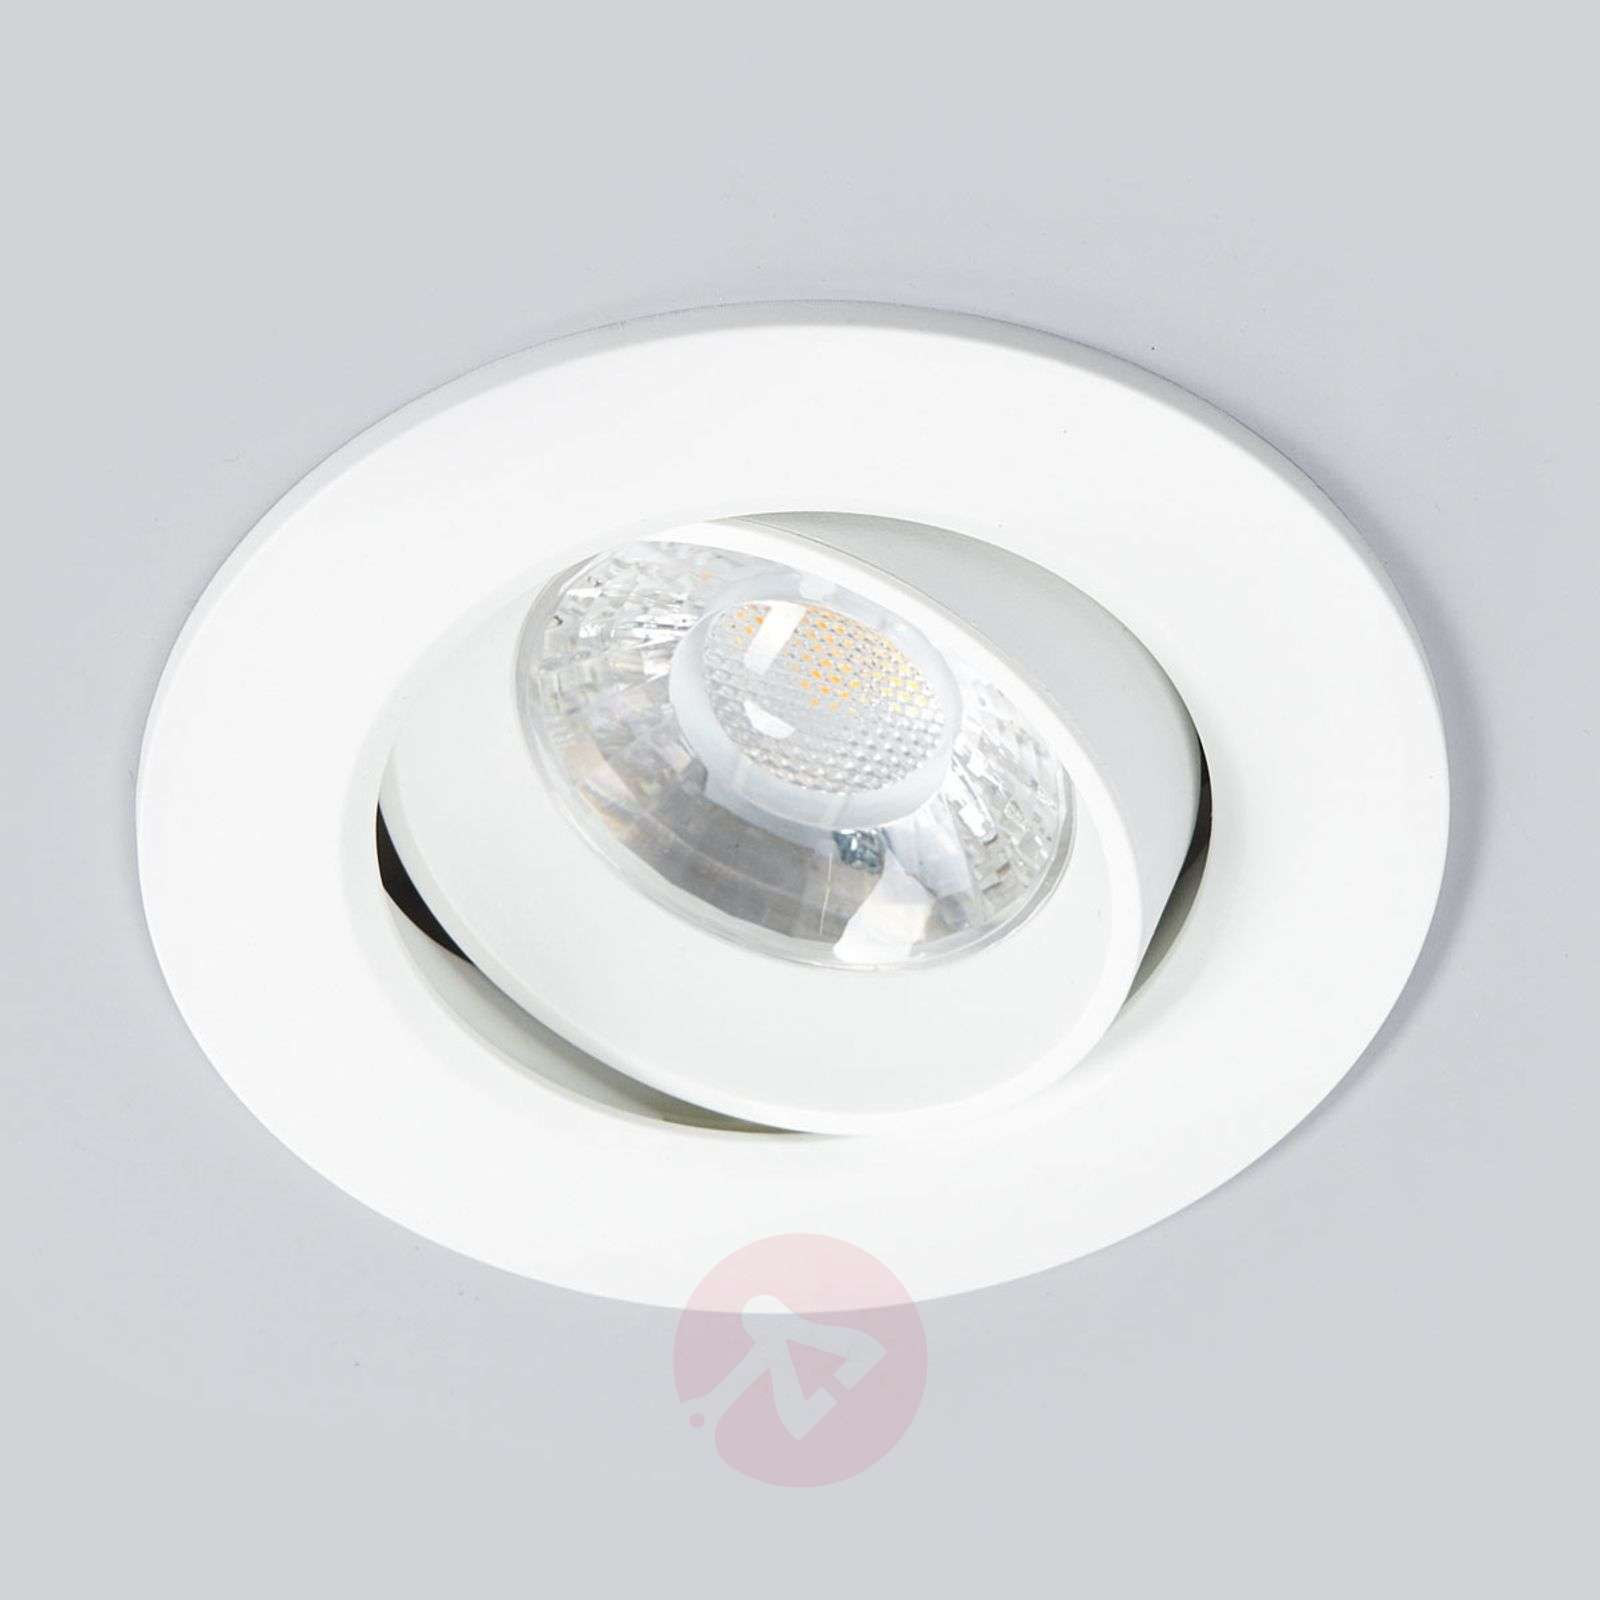 Witte led inbouwspot Quentin, 9W-9978039-02